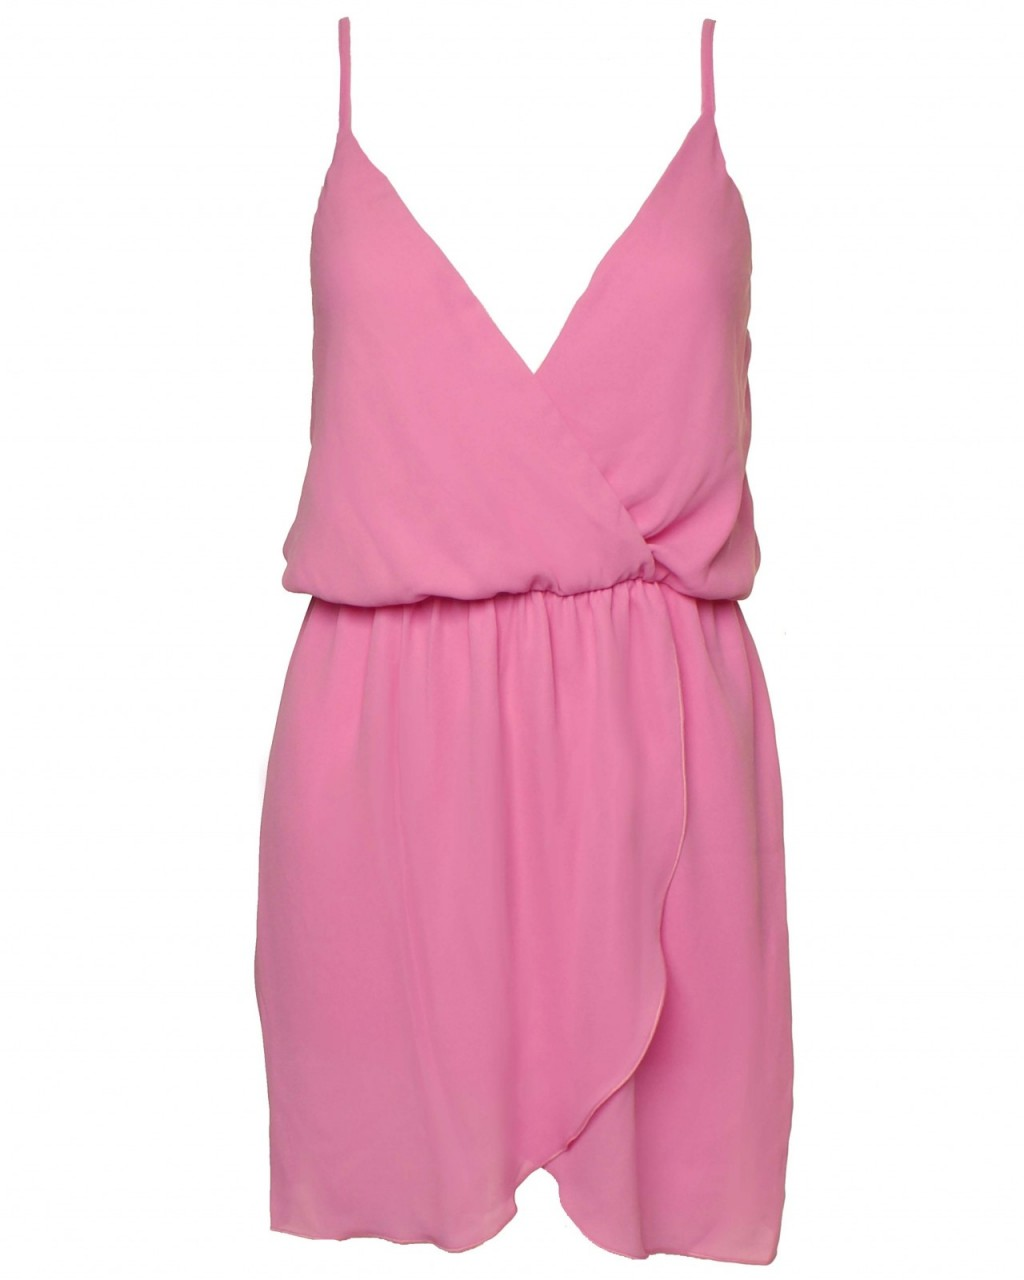 LOVE Pink Spaghetti Strap Wrap Dress